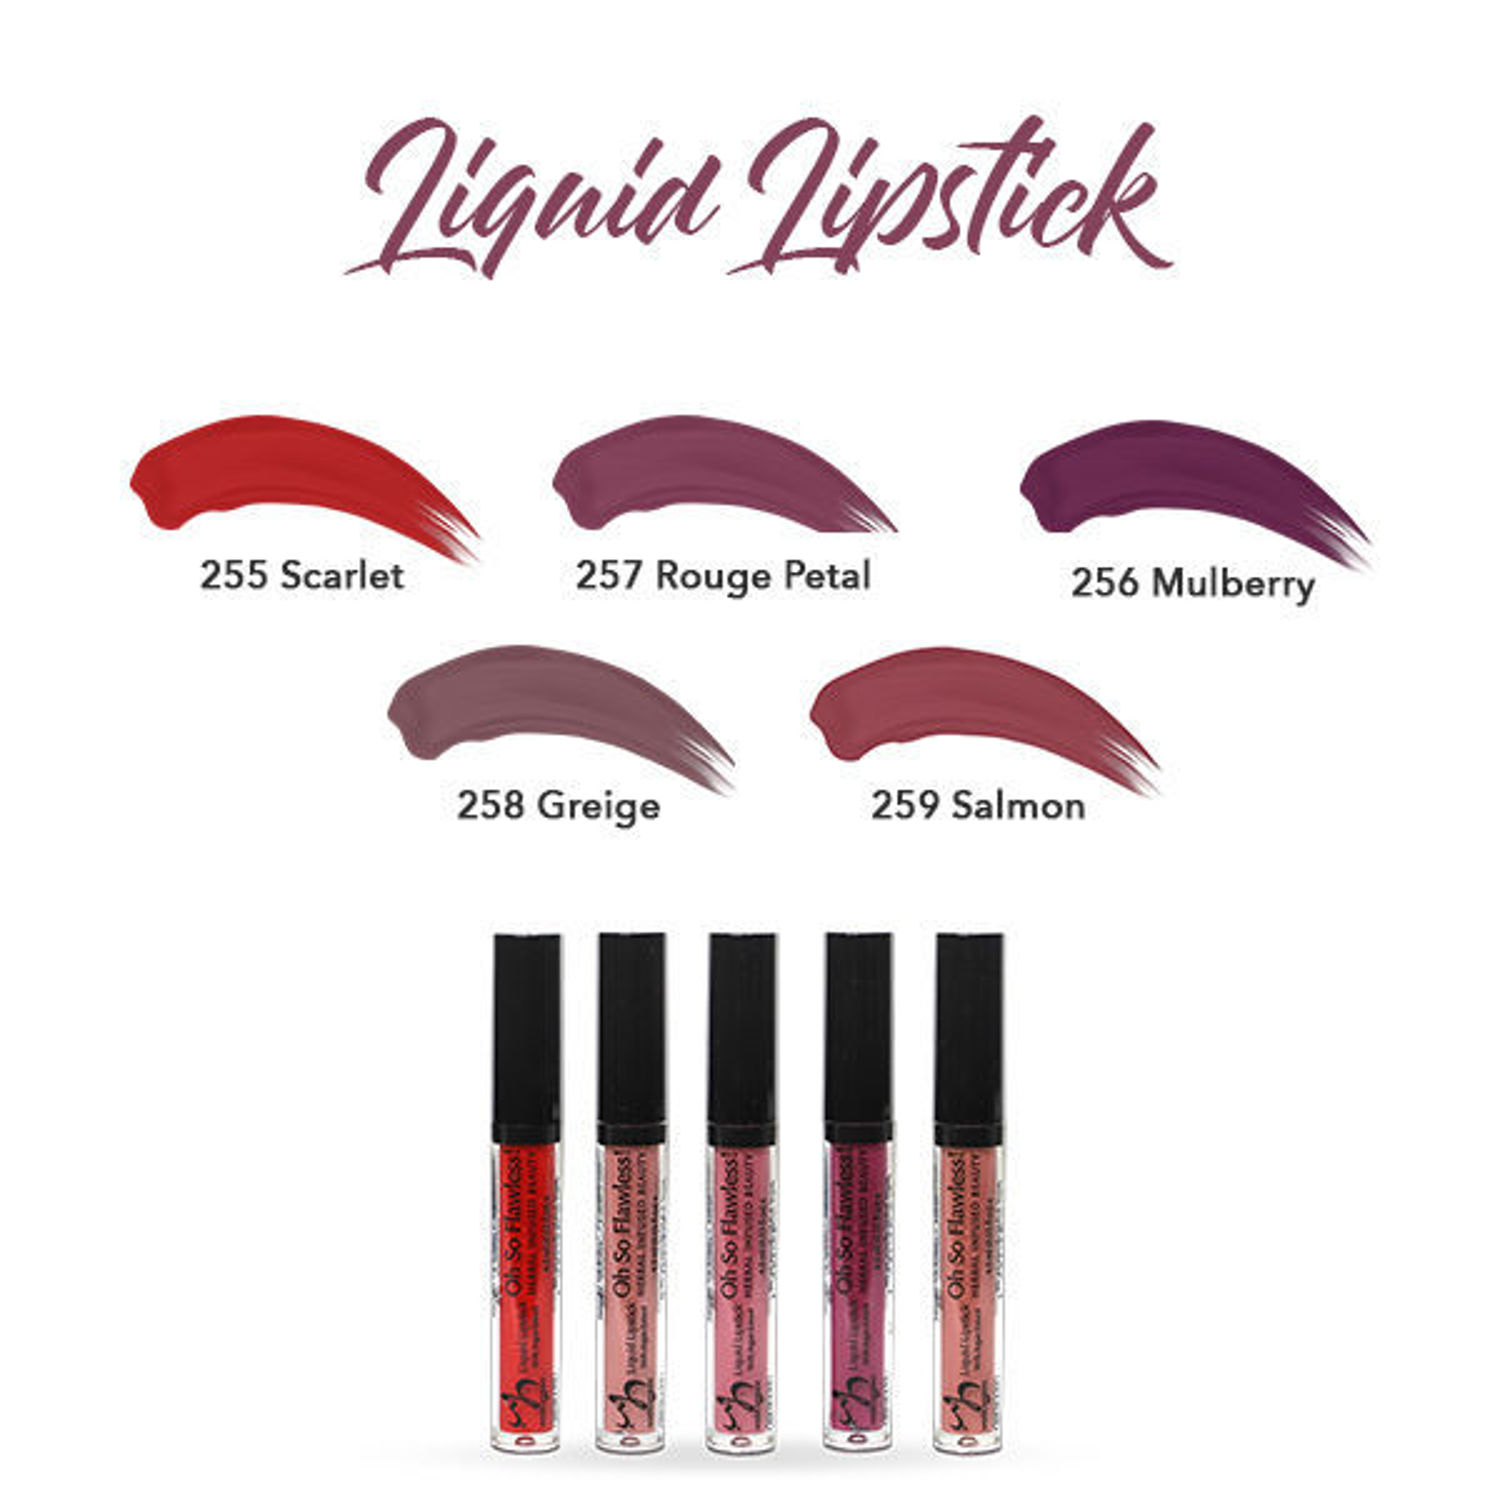 HERBAL INFUSED BEAUTY Liquid Lipstick Swatches